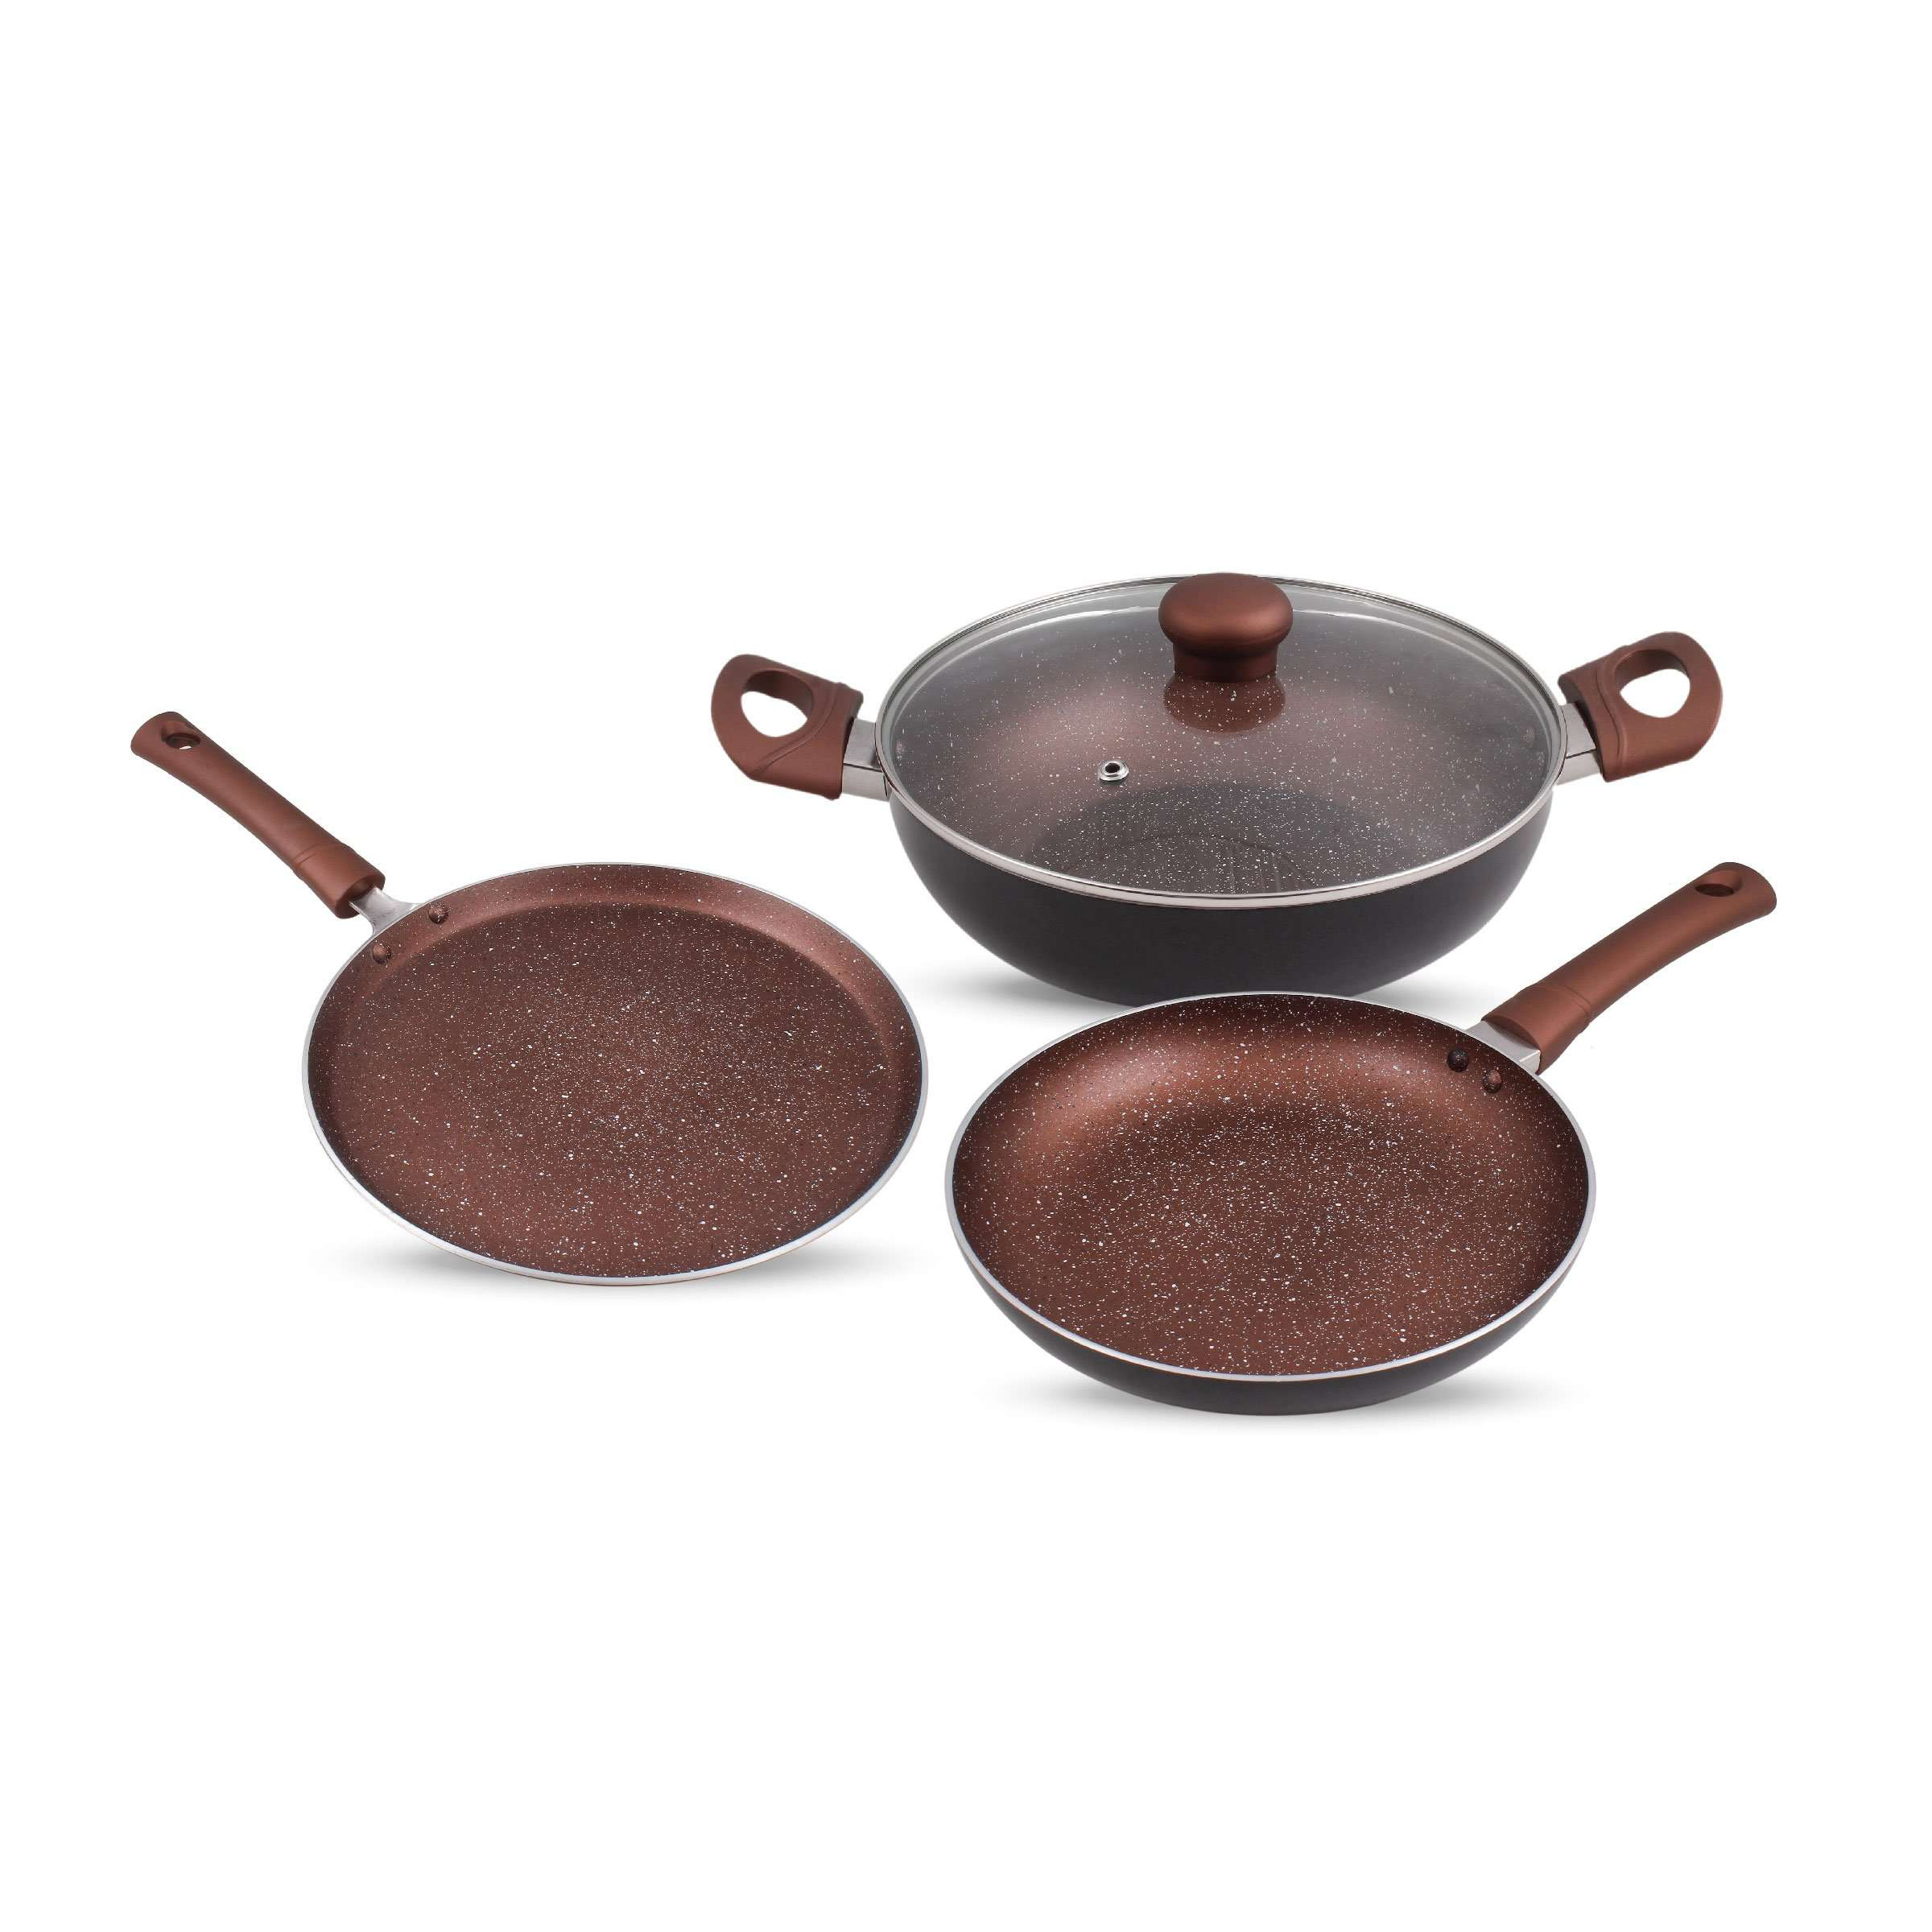 Krav 3 Pieces Non Stick Cookware Set, Wine Red Color (Kadhai with Lid + Tawa + Pan)